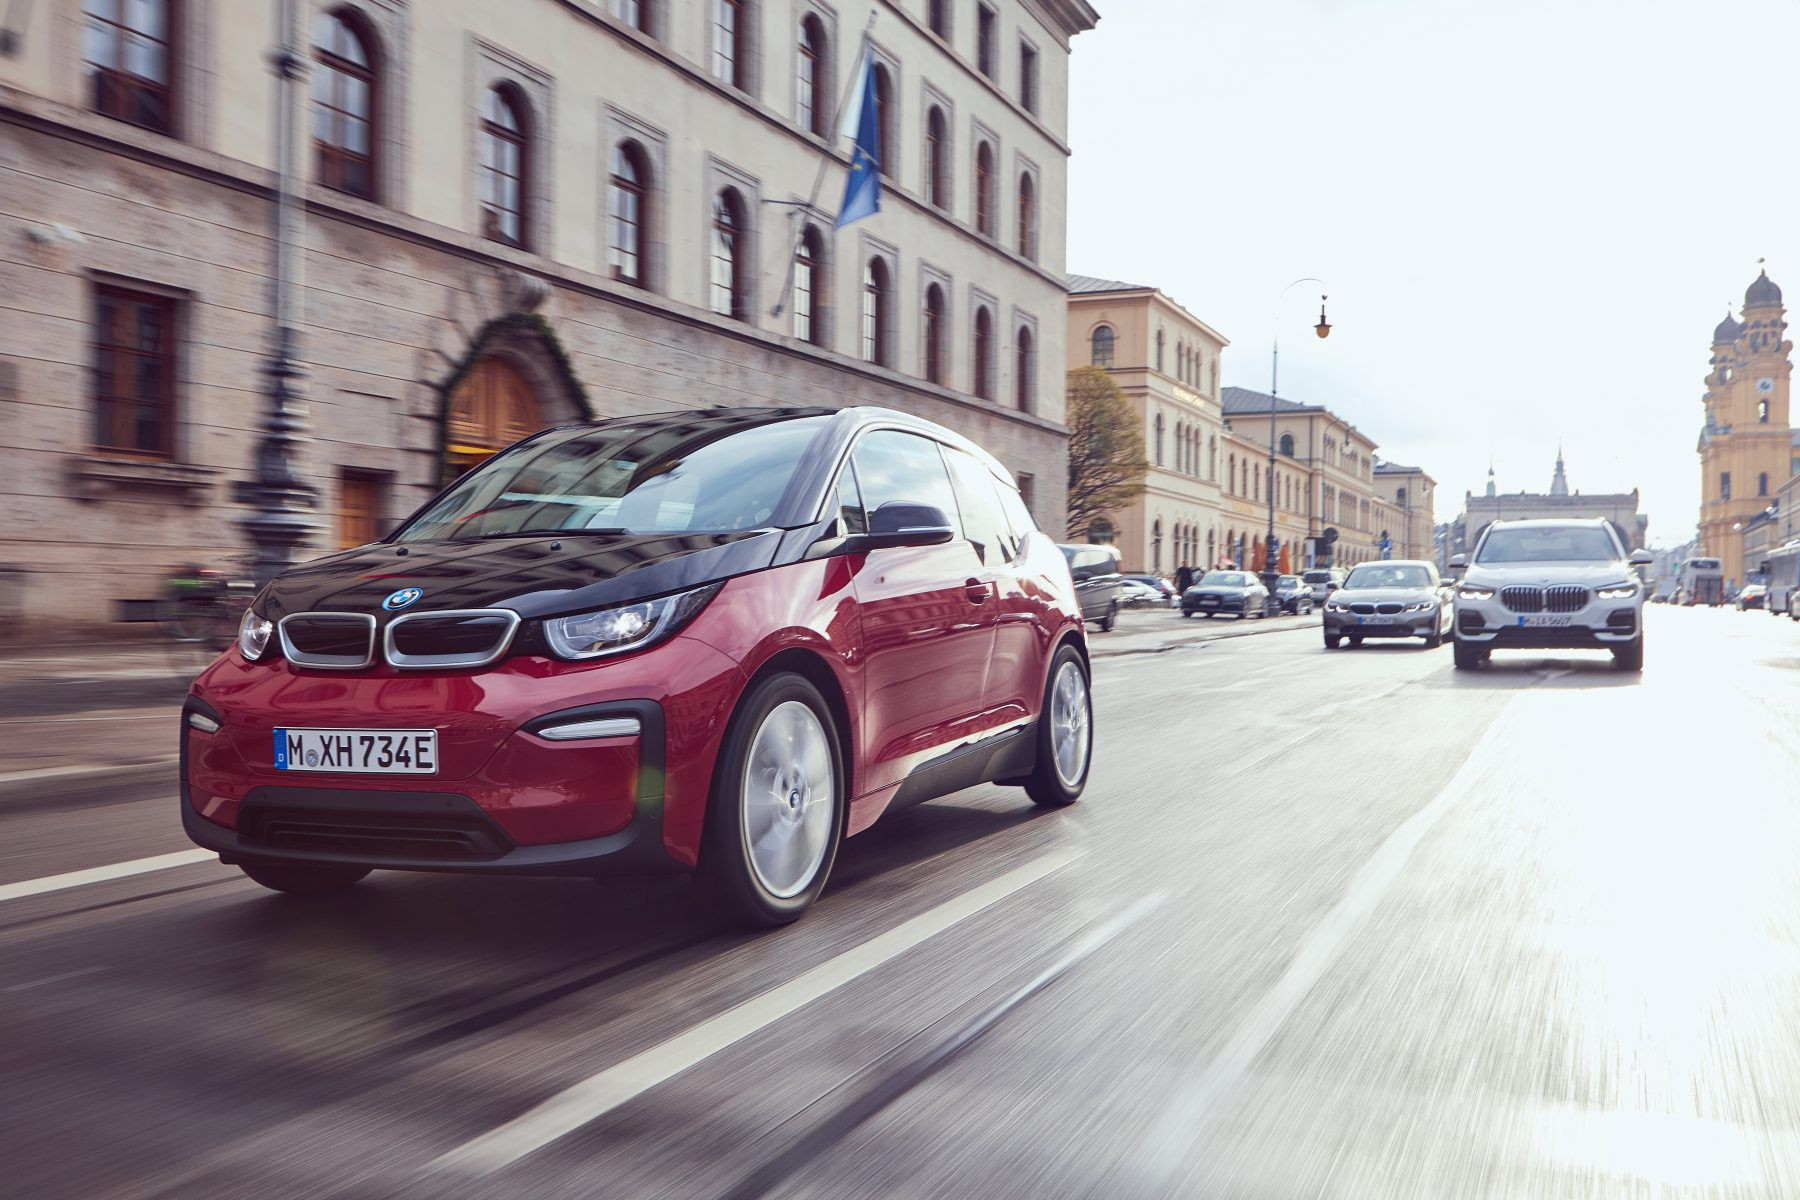 Red BMW i3s driving on a road